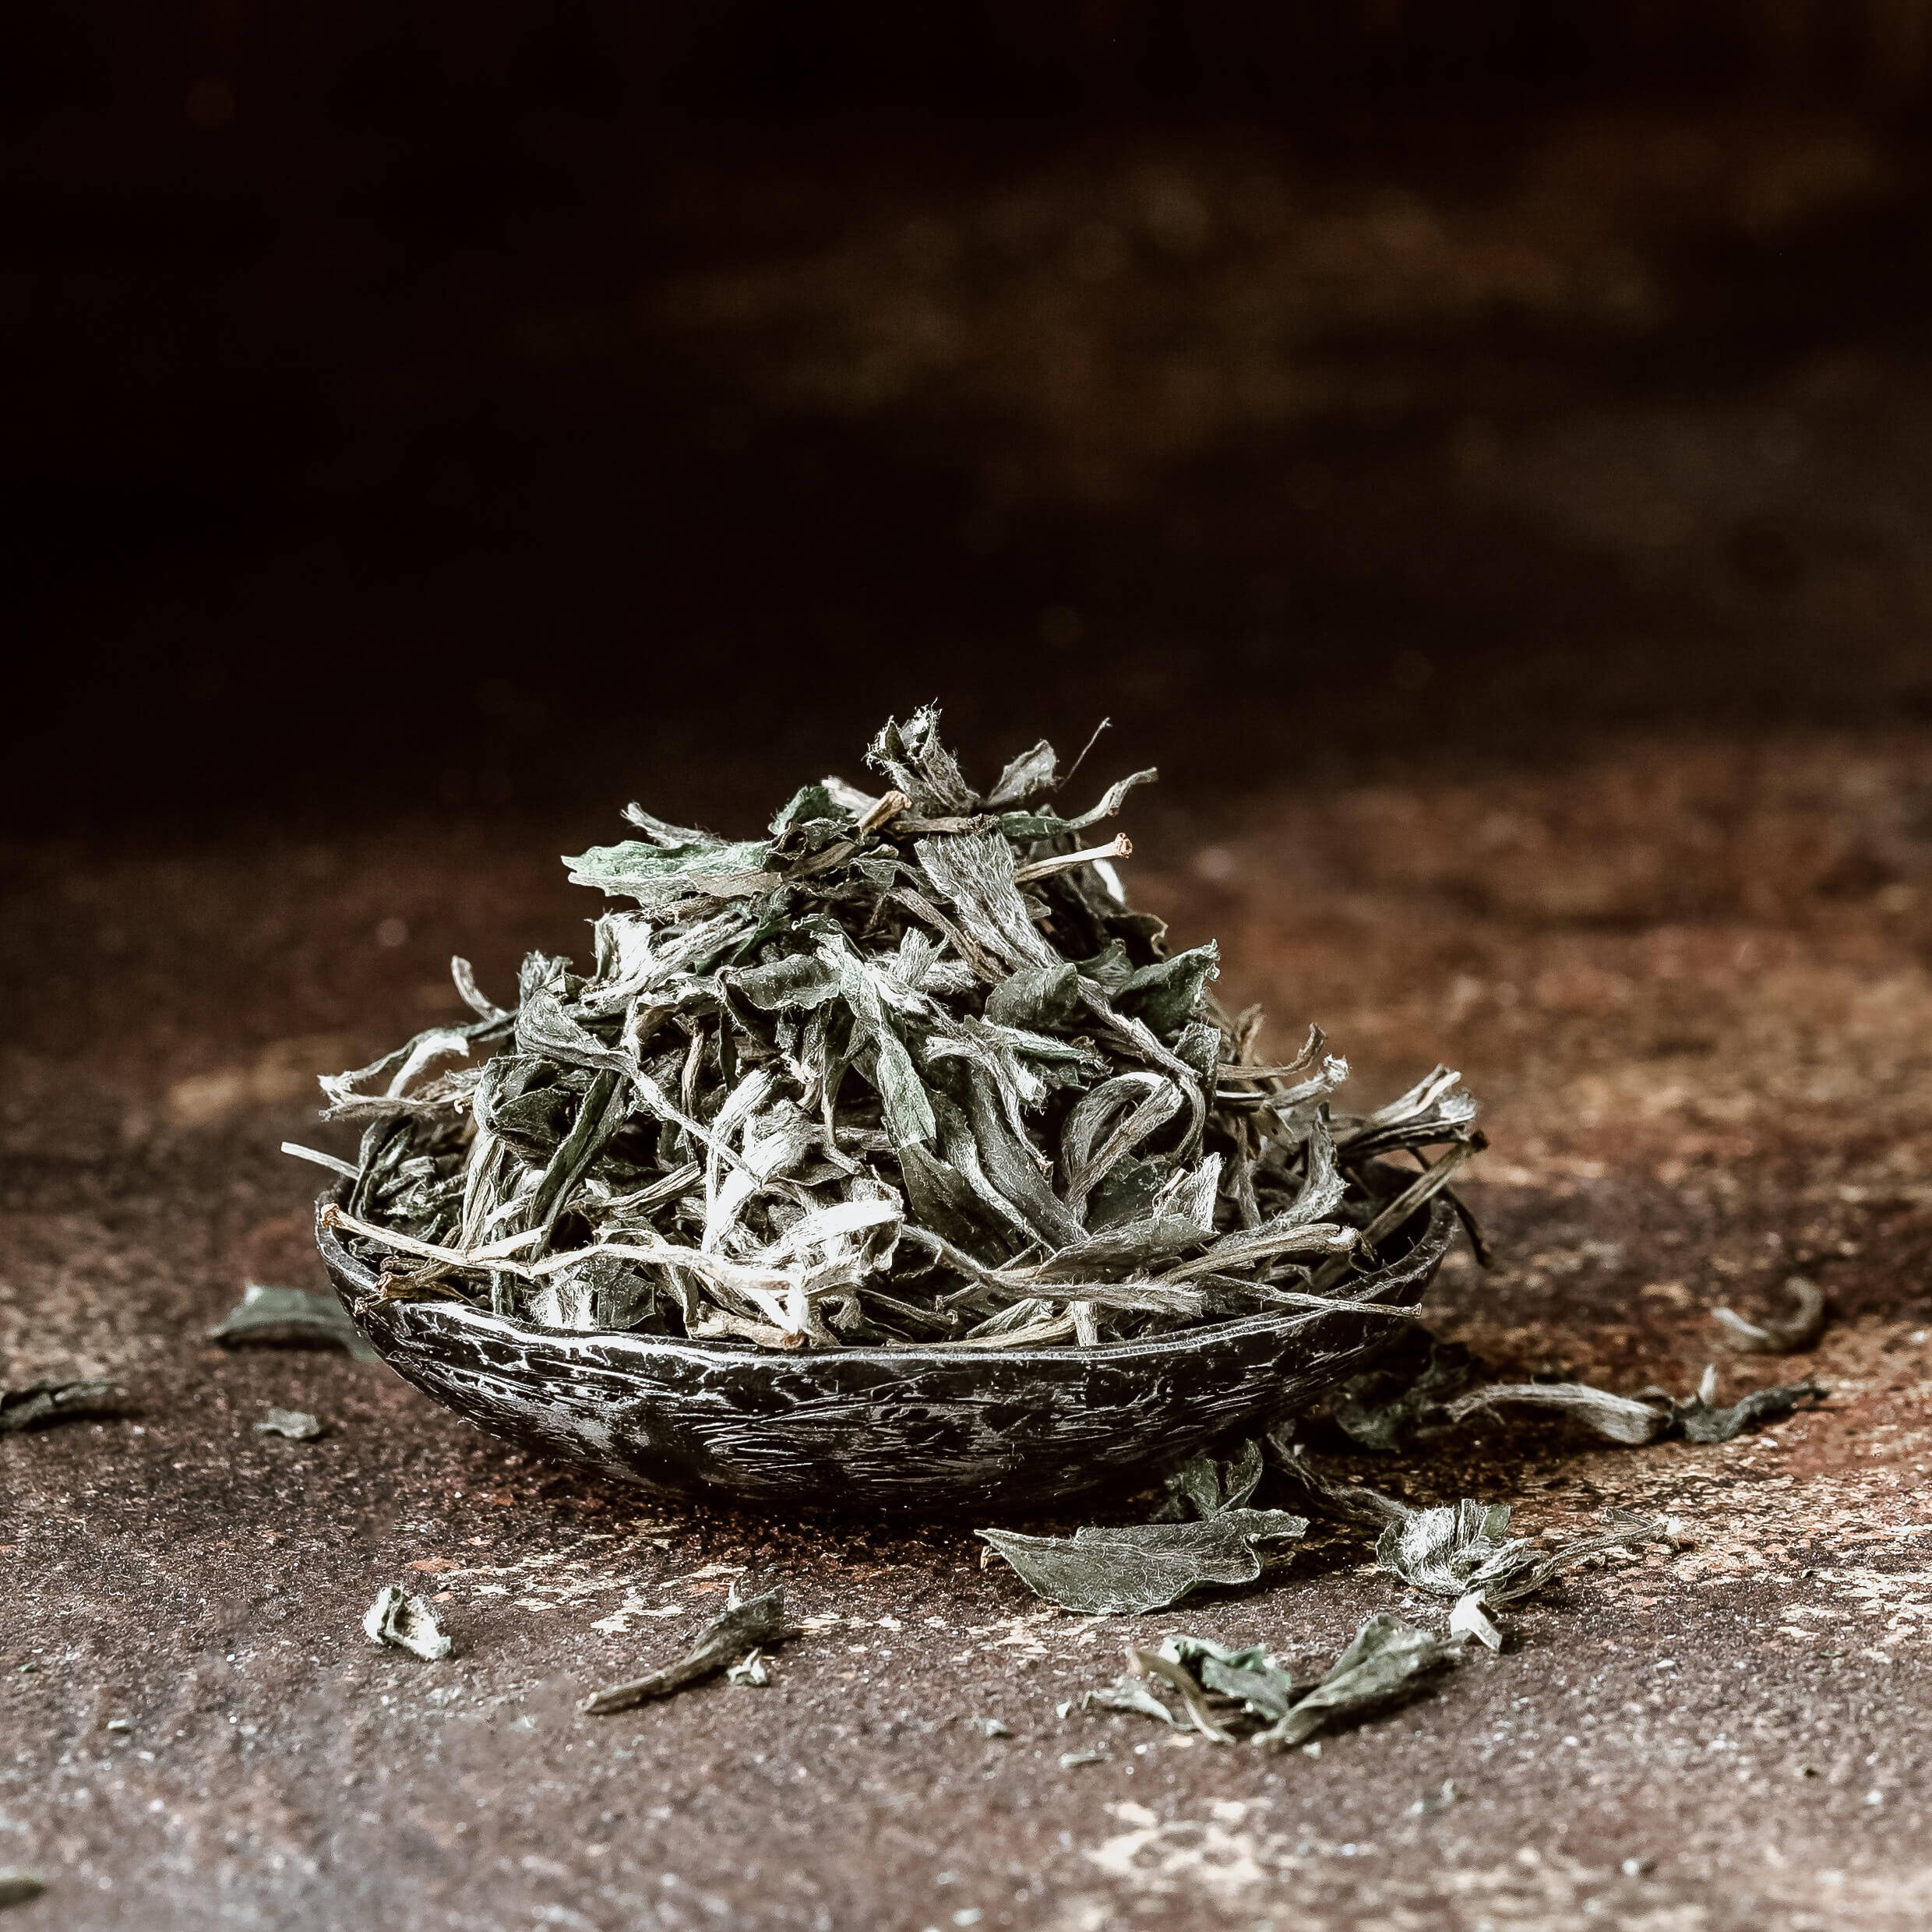 Tozaime key ingredient - White tea